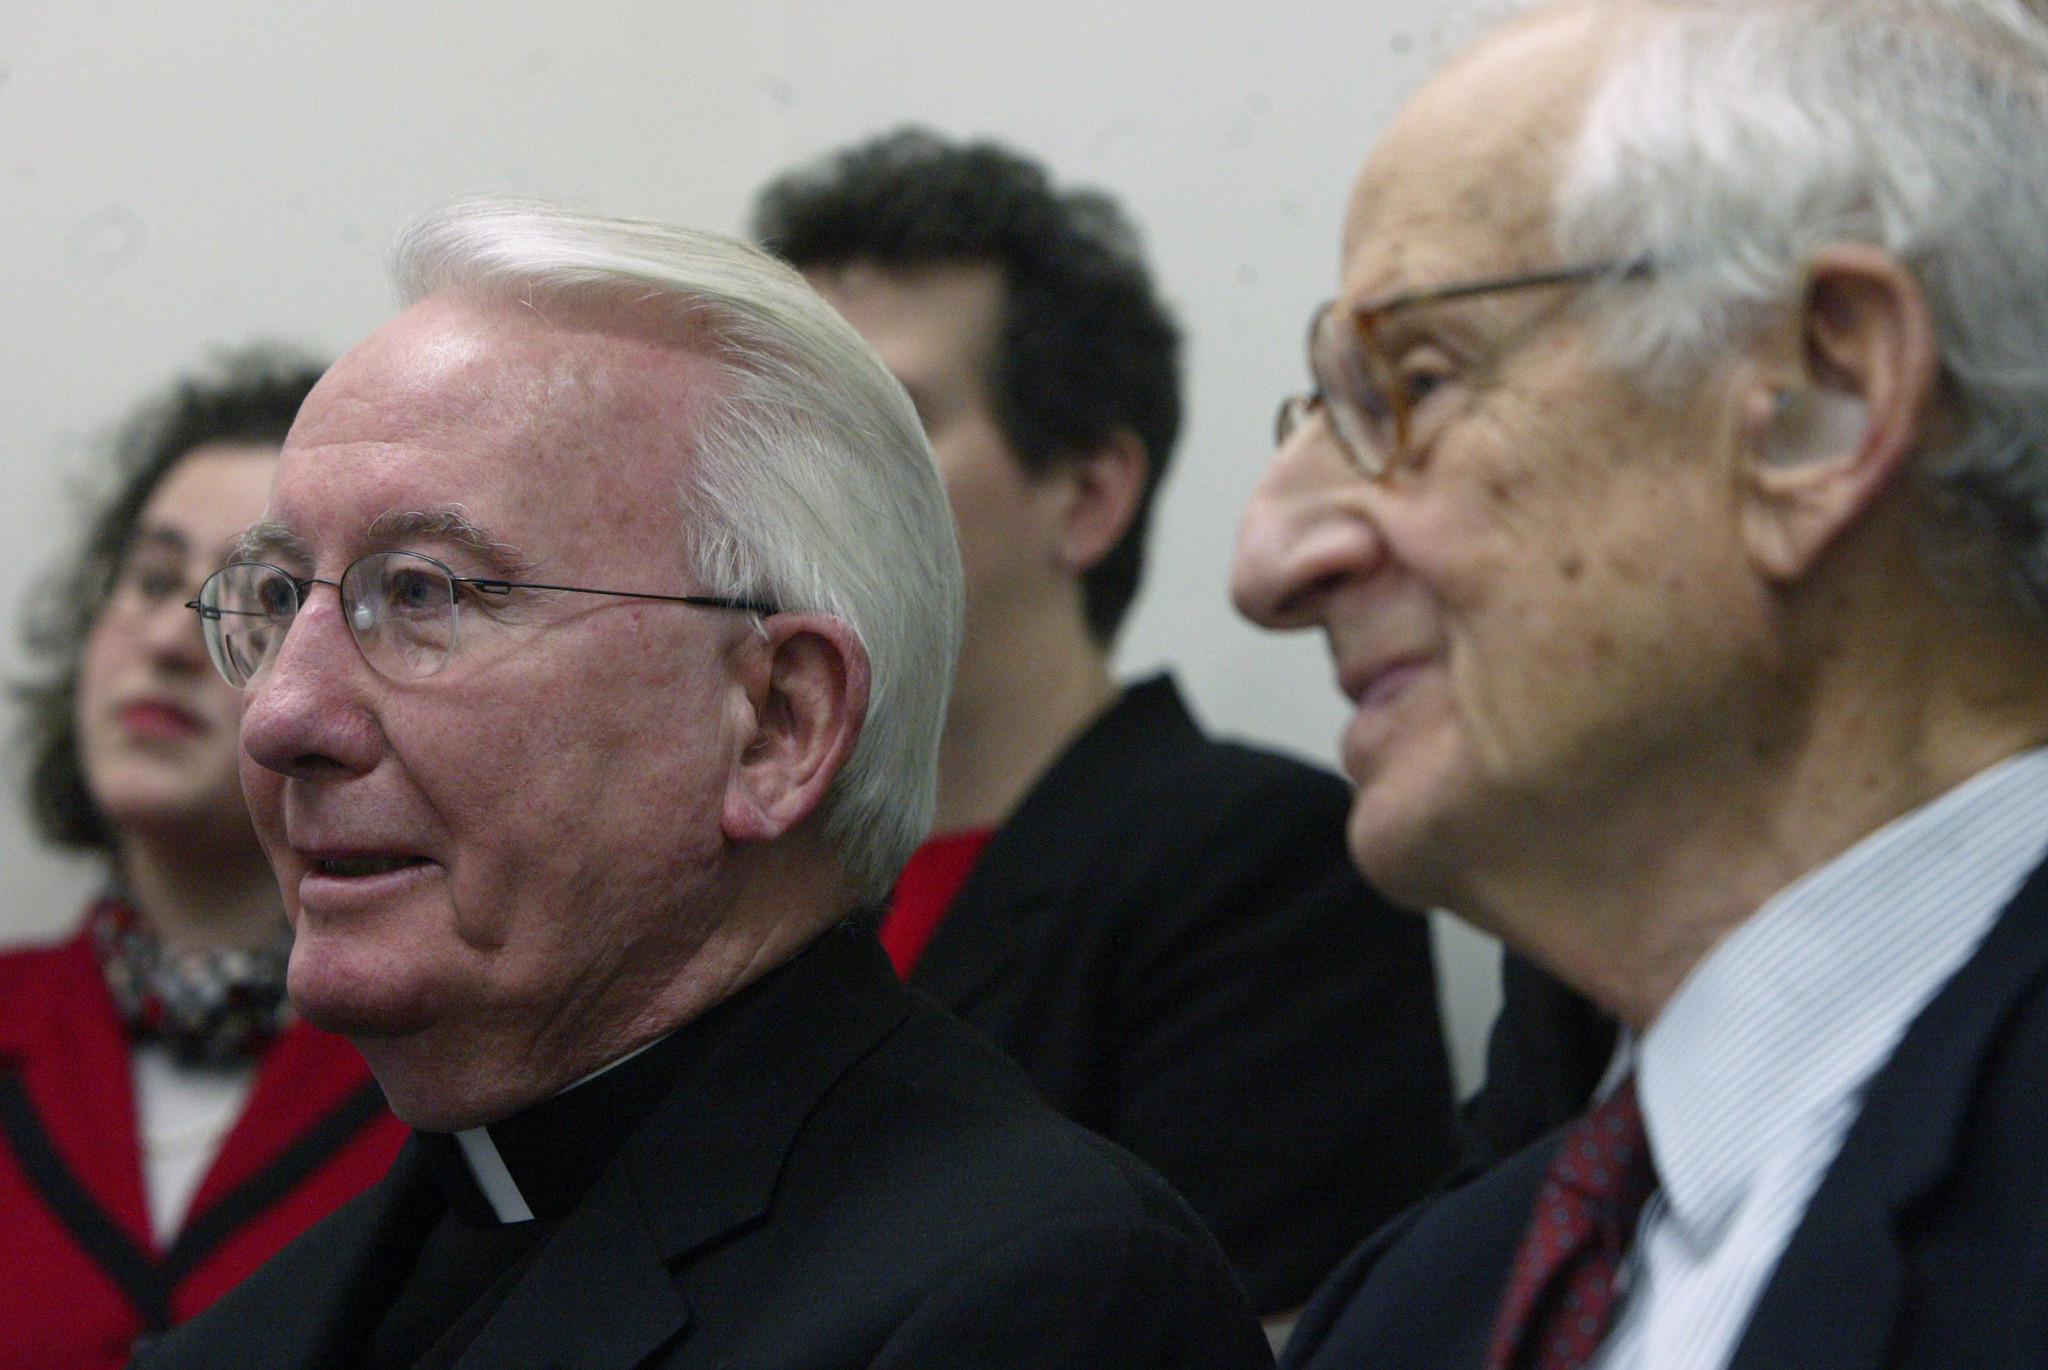 Father Joseph O'Hare, founding NYC campaign finance board chair and ex-Fordham president, dies at 89